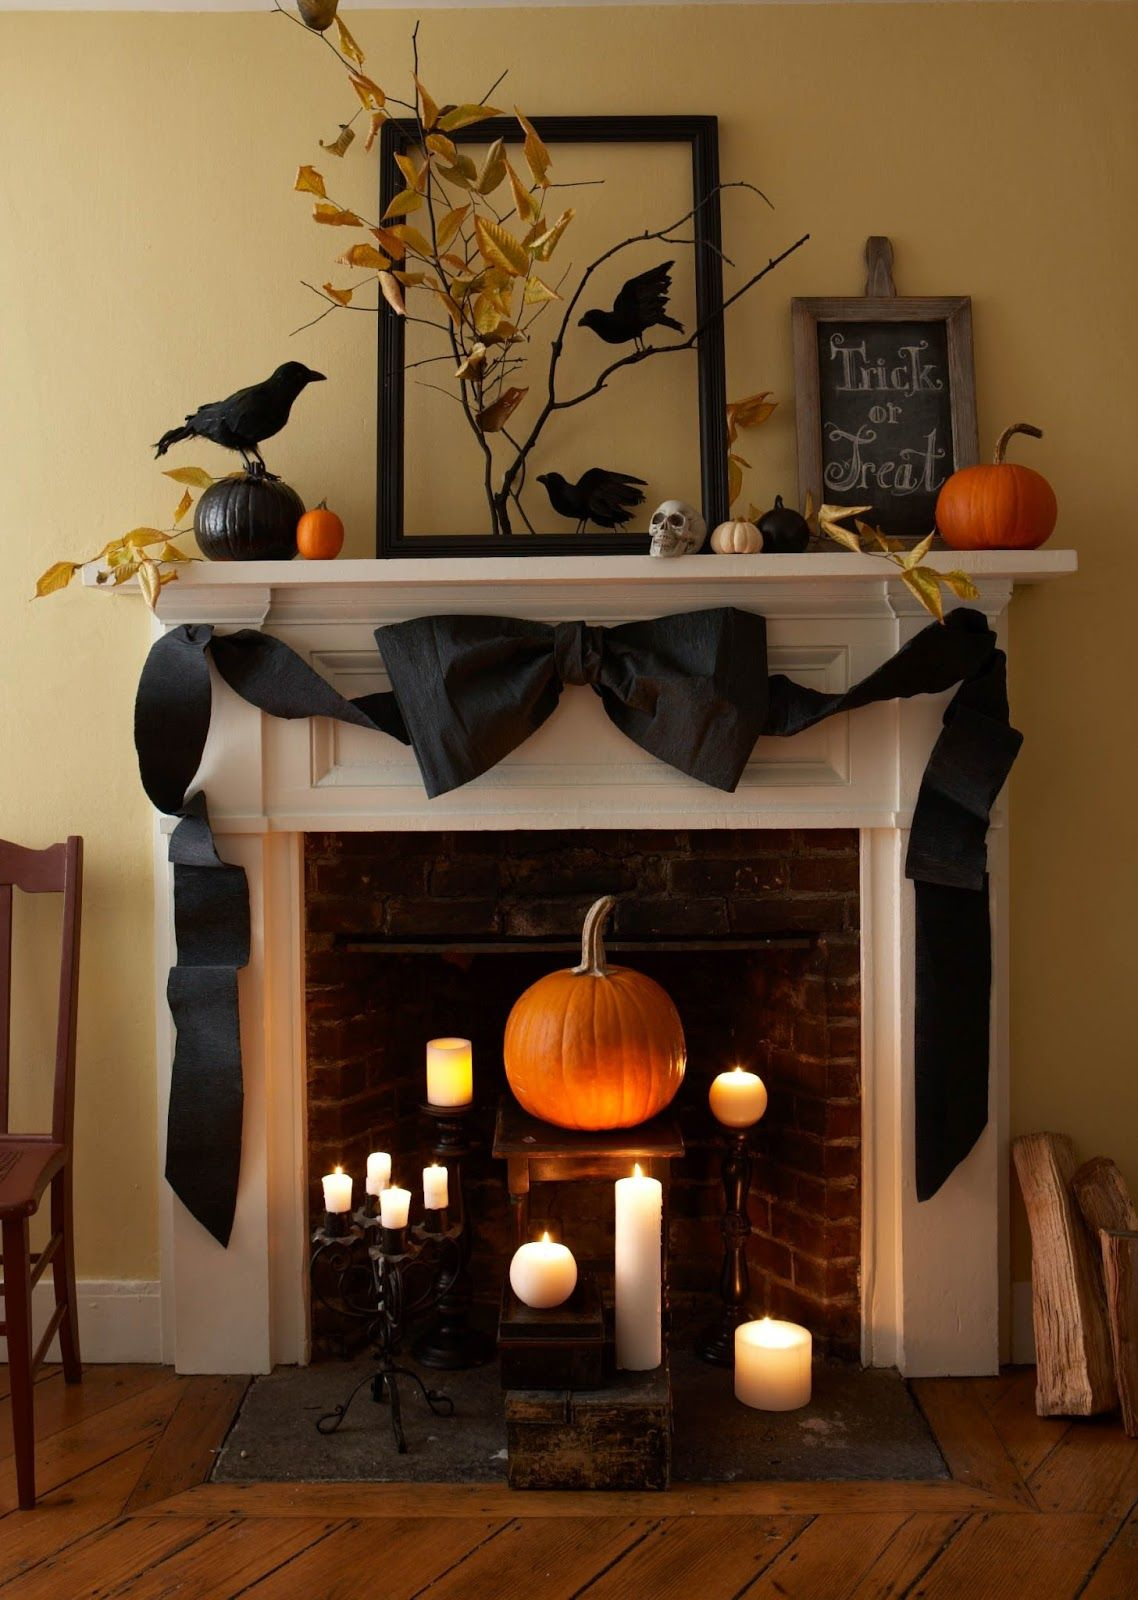 50 of the Most Popular Halloween Ideas on Pinterest Halloween - Pinterest Halloween Decorations